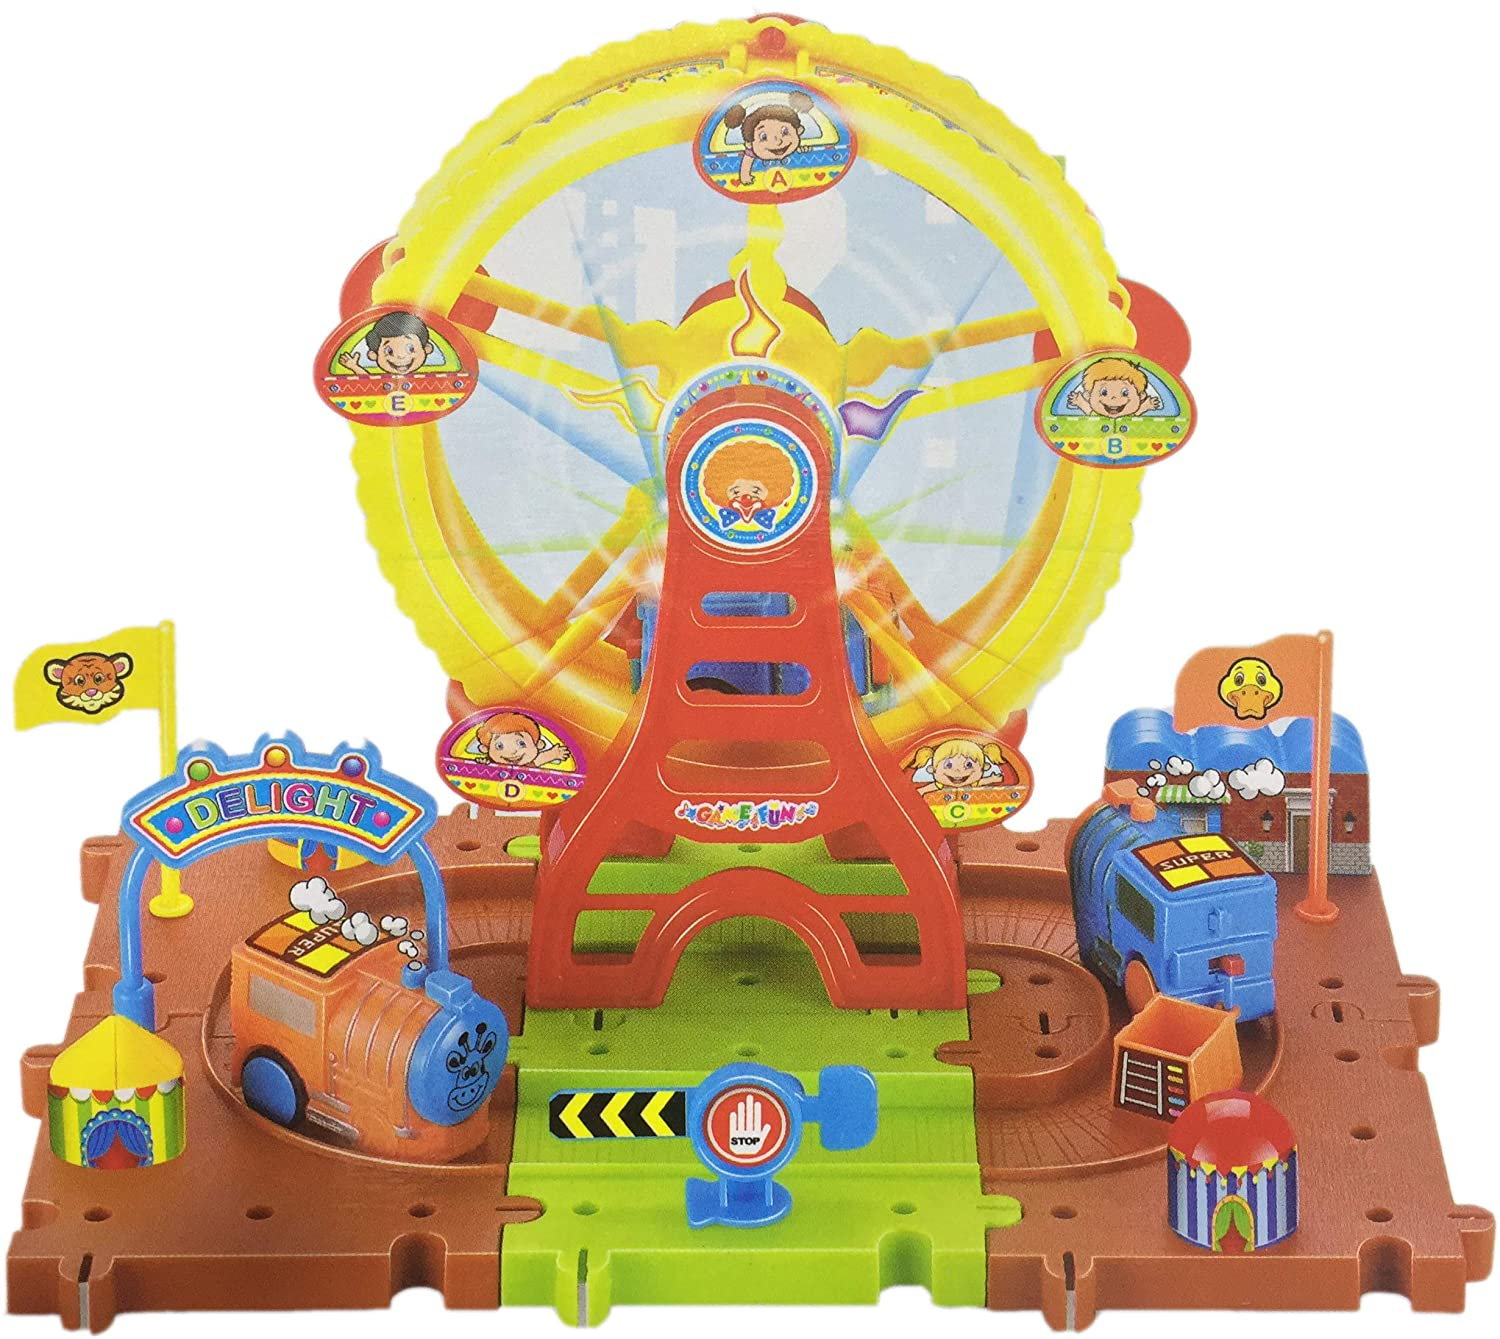 d23b44462c8 Buy Blossom 29 PCs Train Track Toy with Music   Light 360° Rotating for Kids  Educational Building Blocks Online at Low Prices in India - Amazon.in